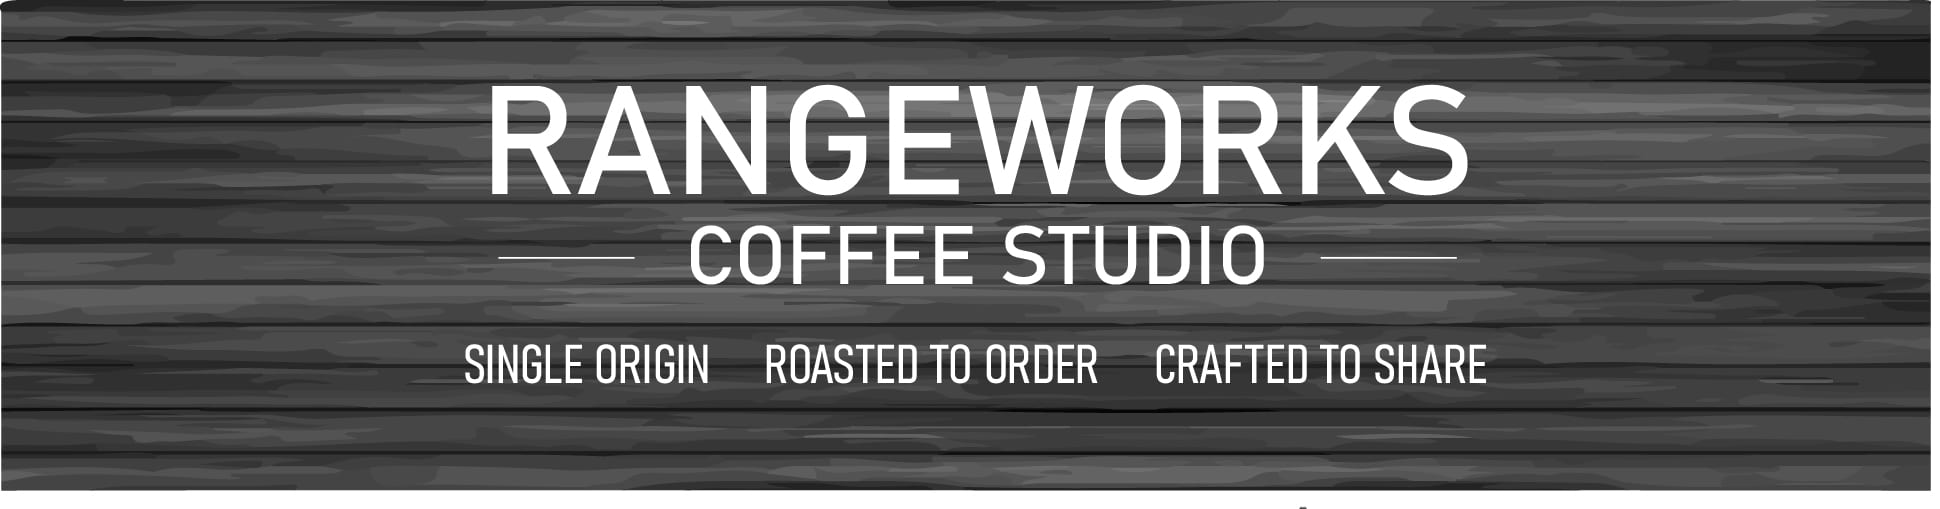 Rangeworks Coffee Studio